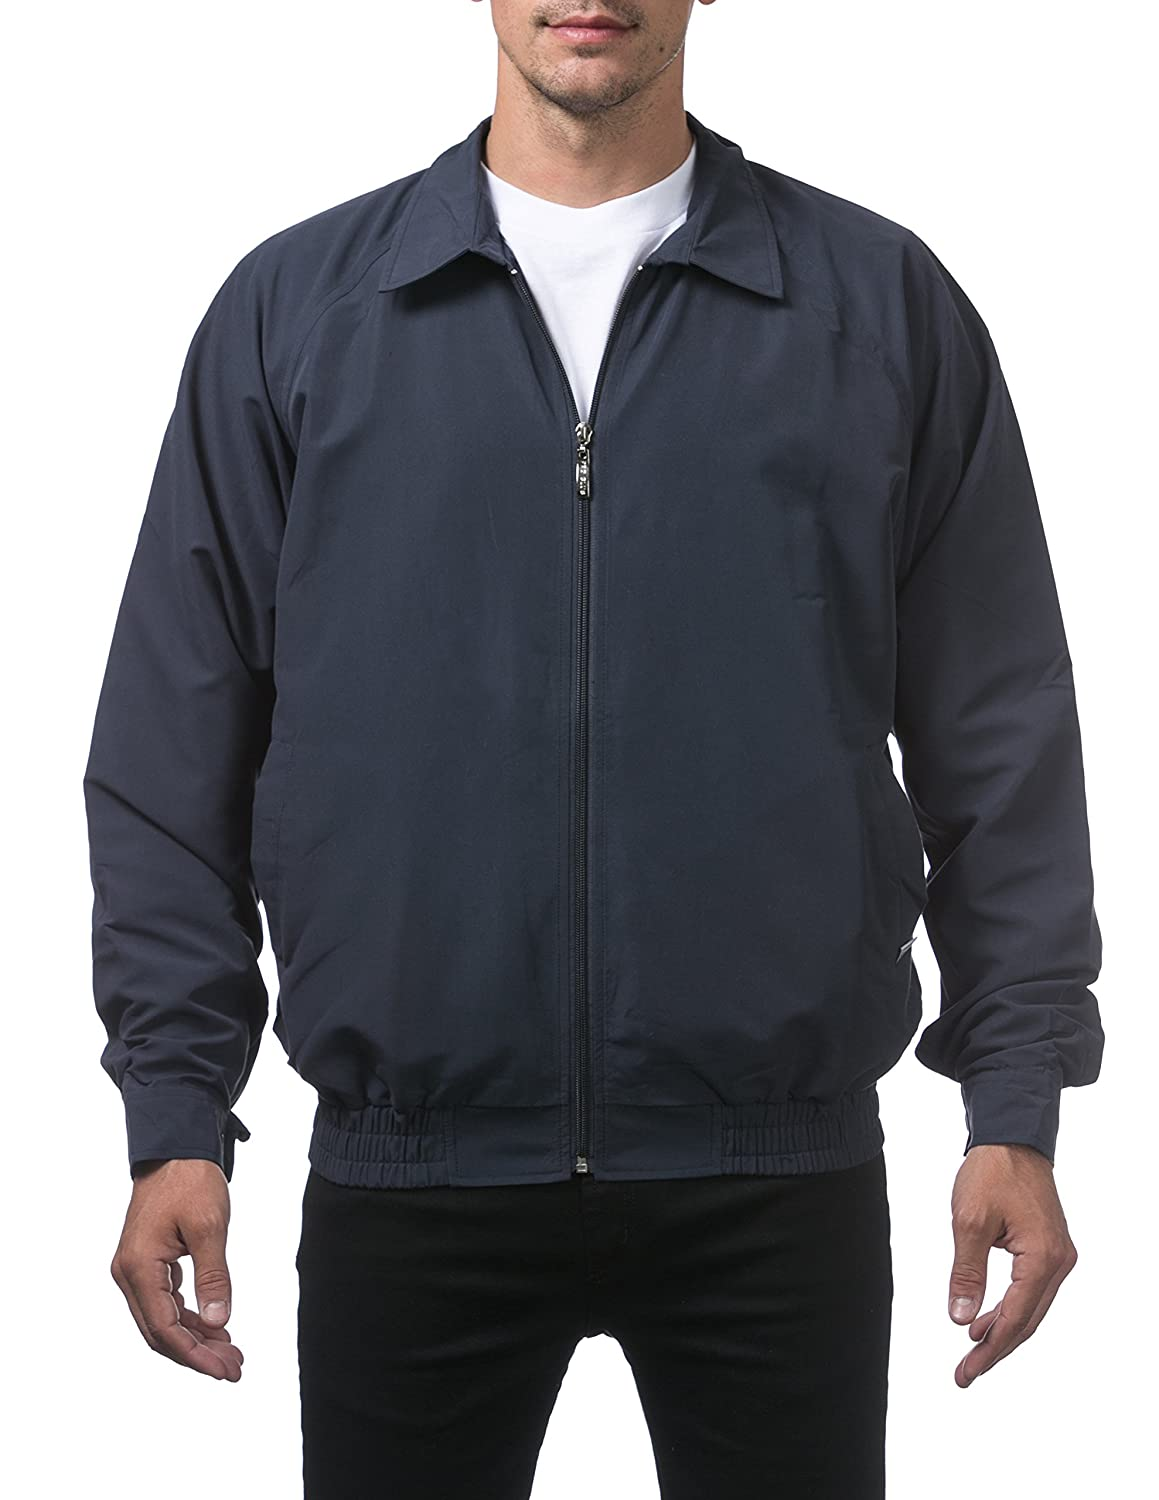 Pro Club Men's Spring/Fall Jacket 123SF